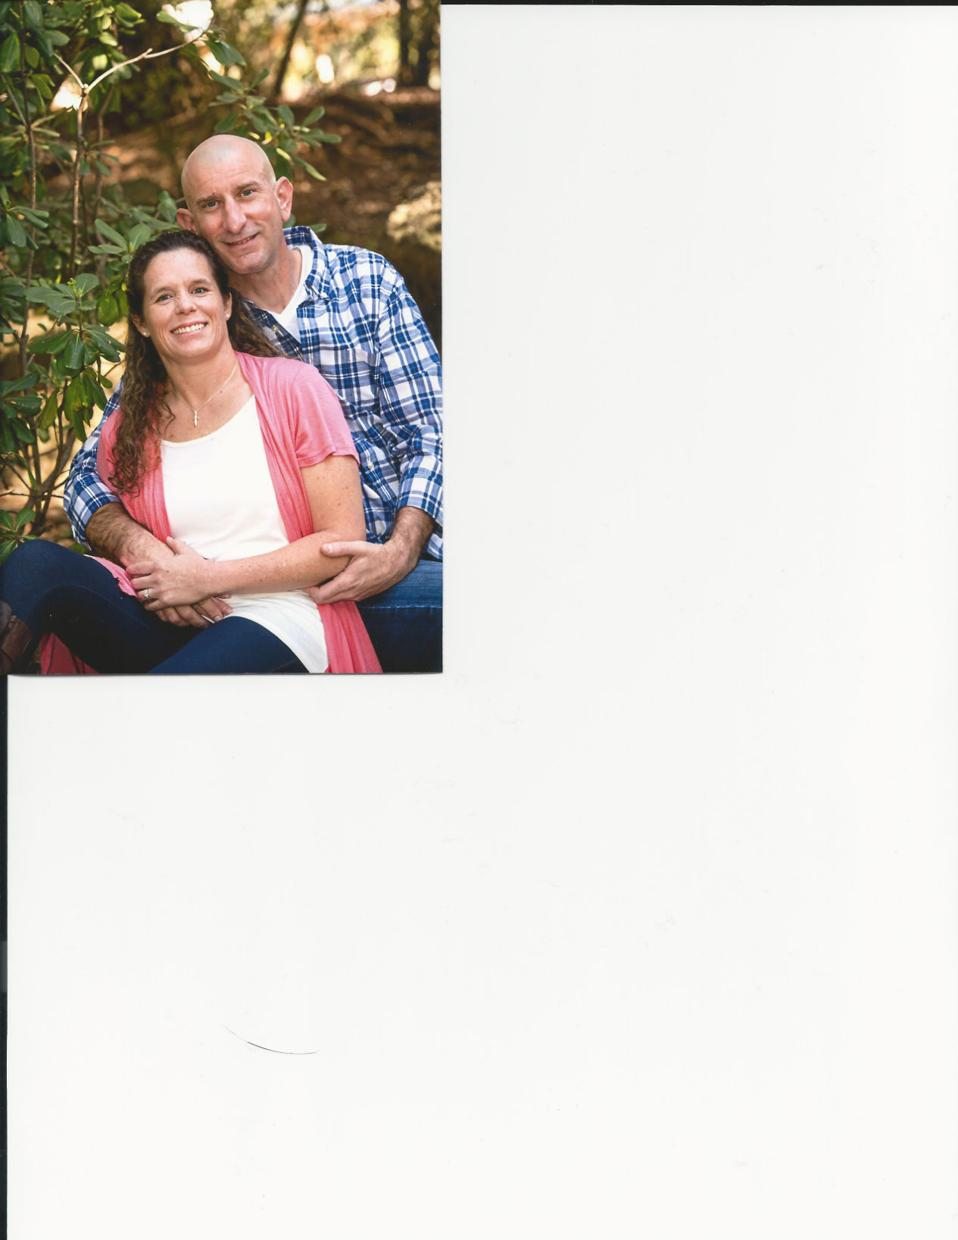 Michael Doonan and Lynette Mize were engaged in January at John's Incredible Pizza